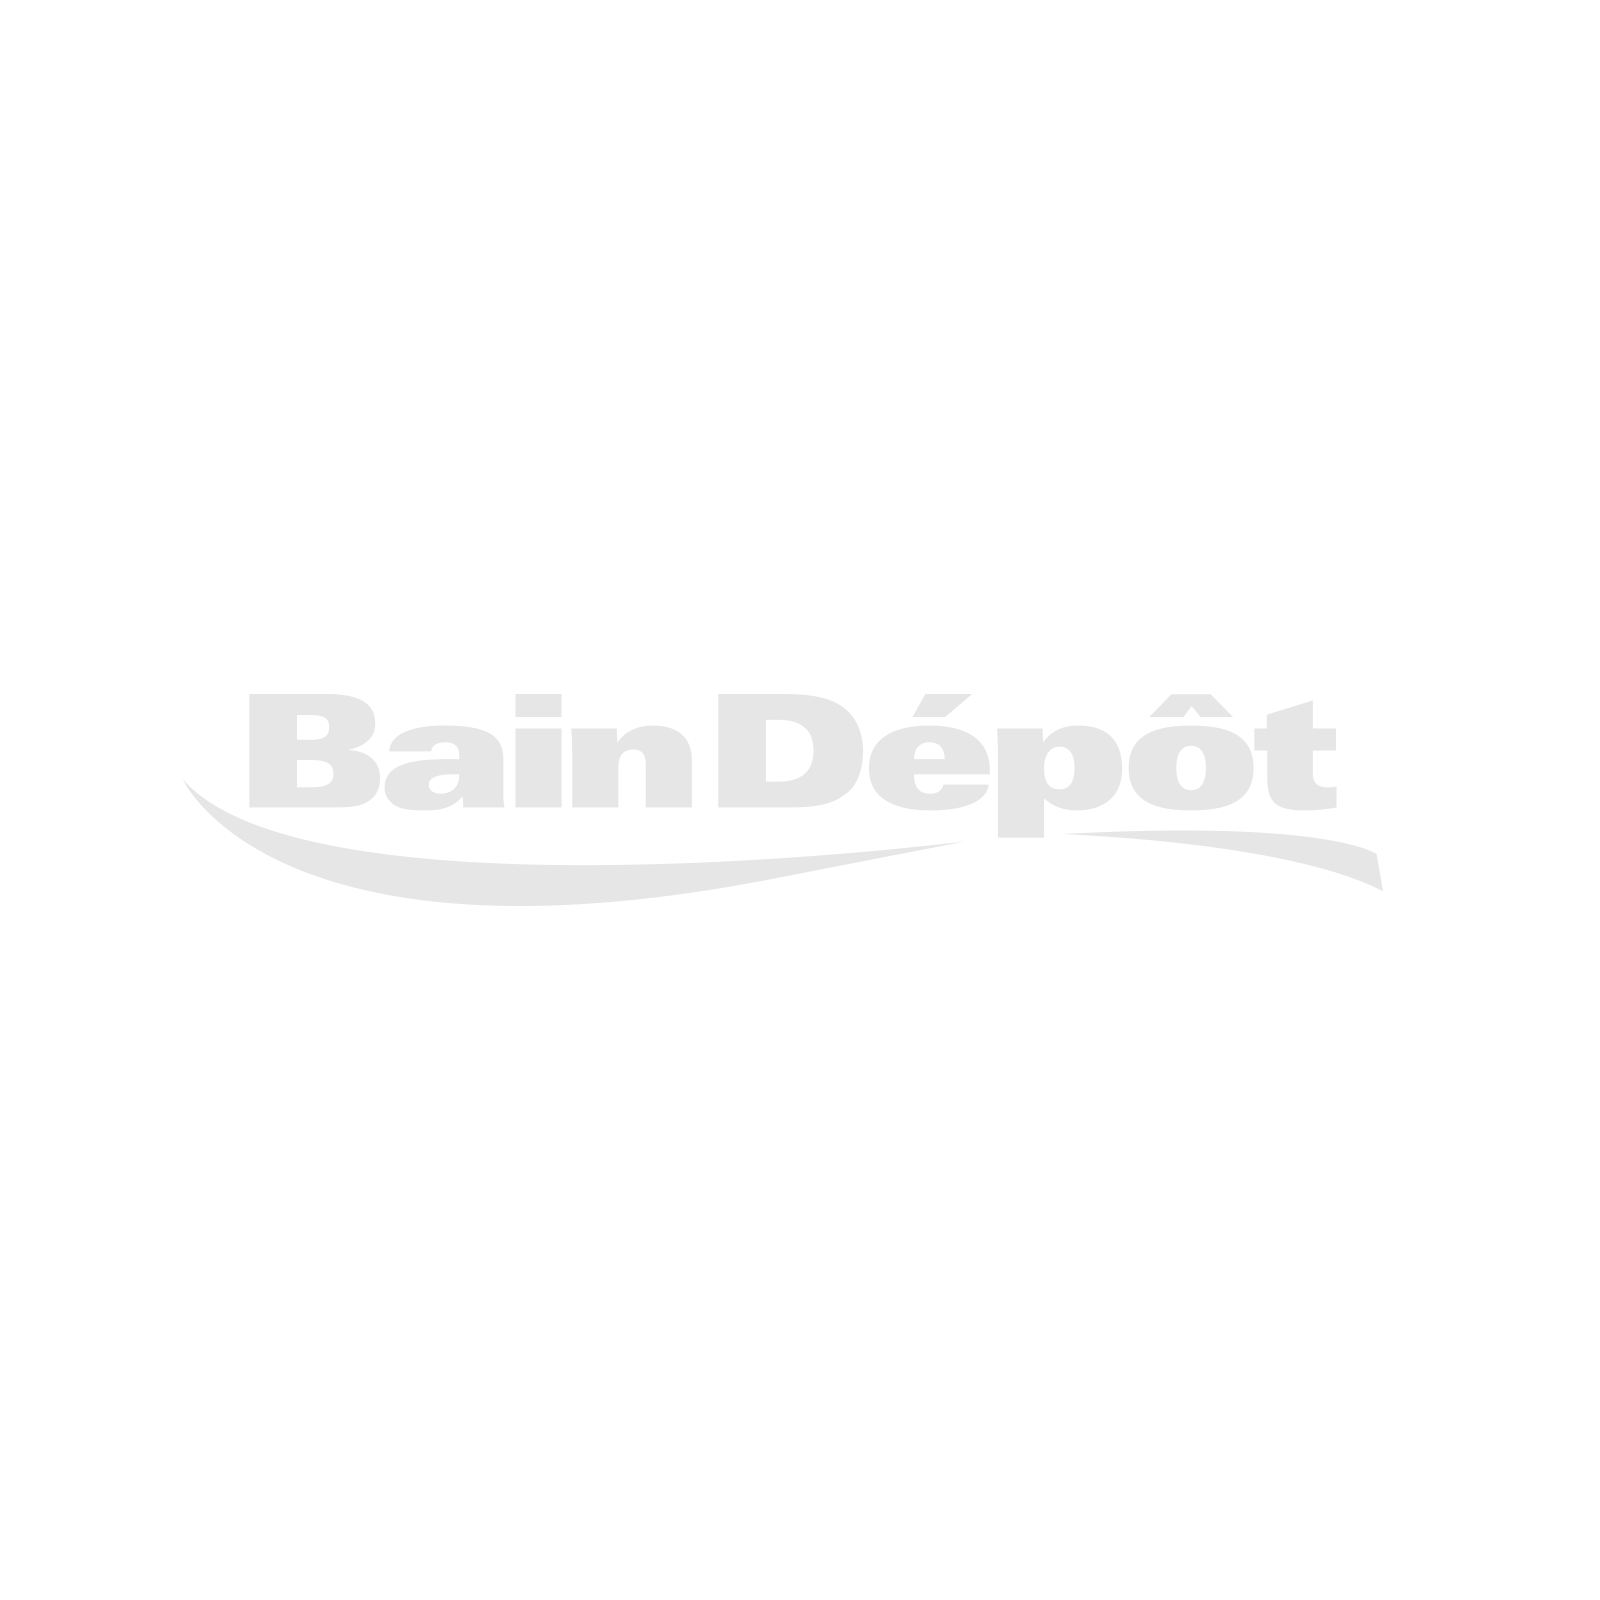 "48"" x 36"" Rectangular shower base for right corner installation"